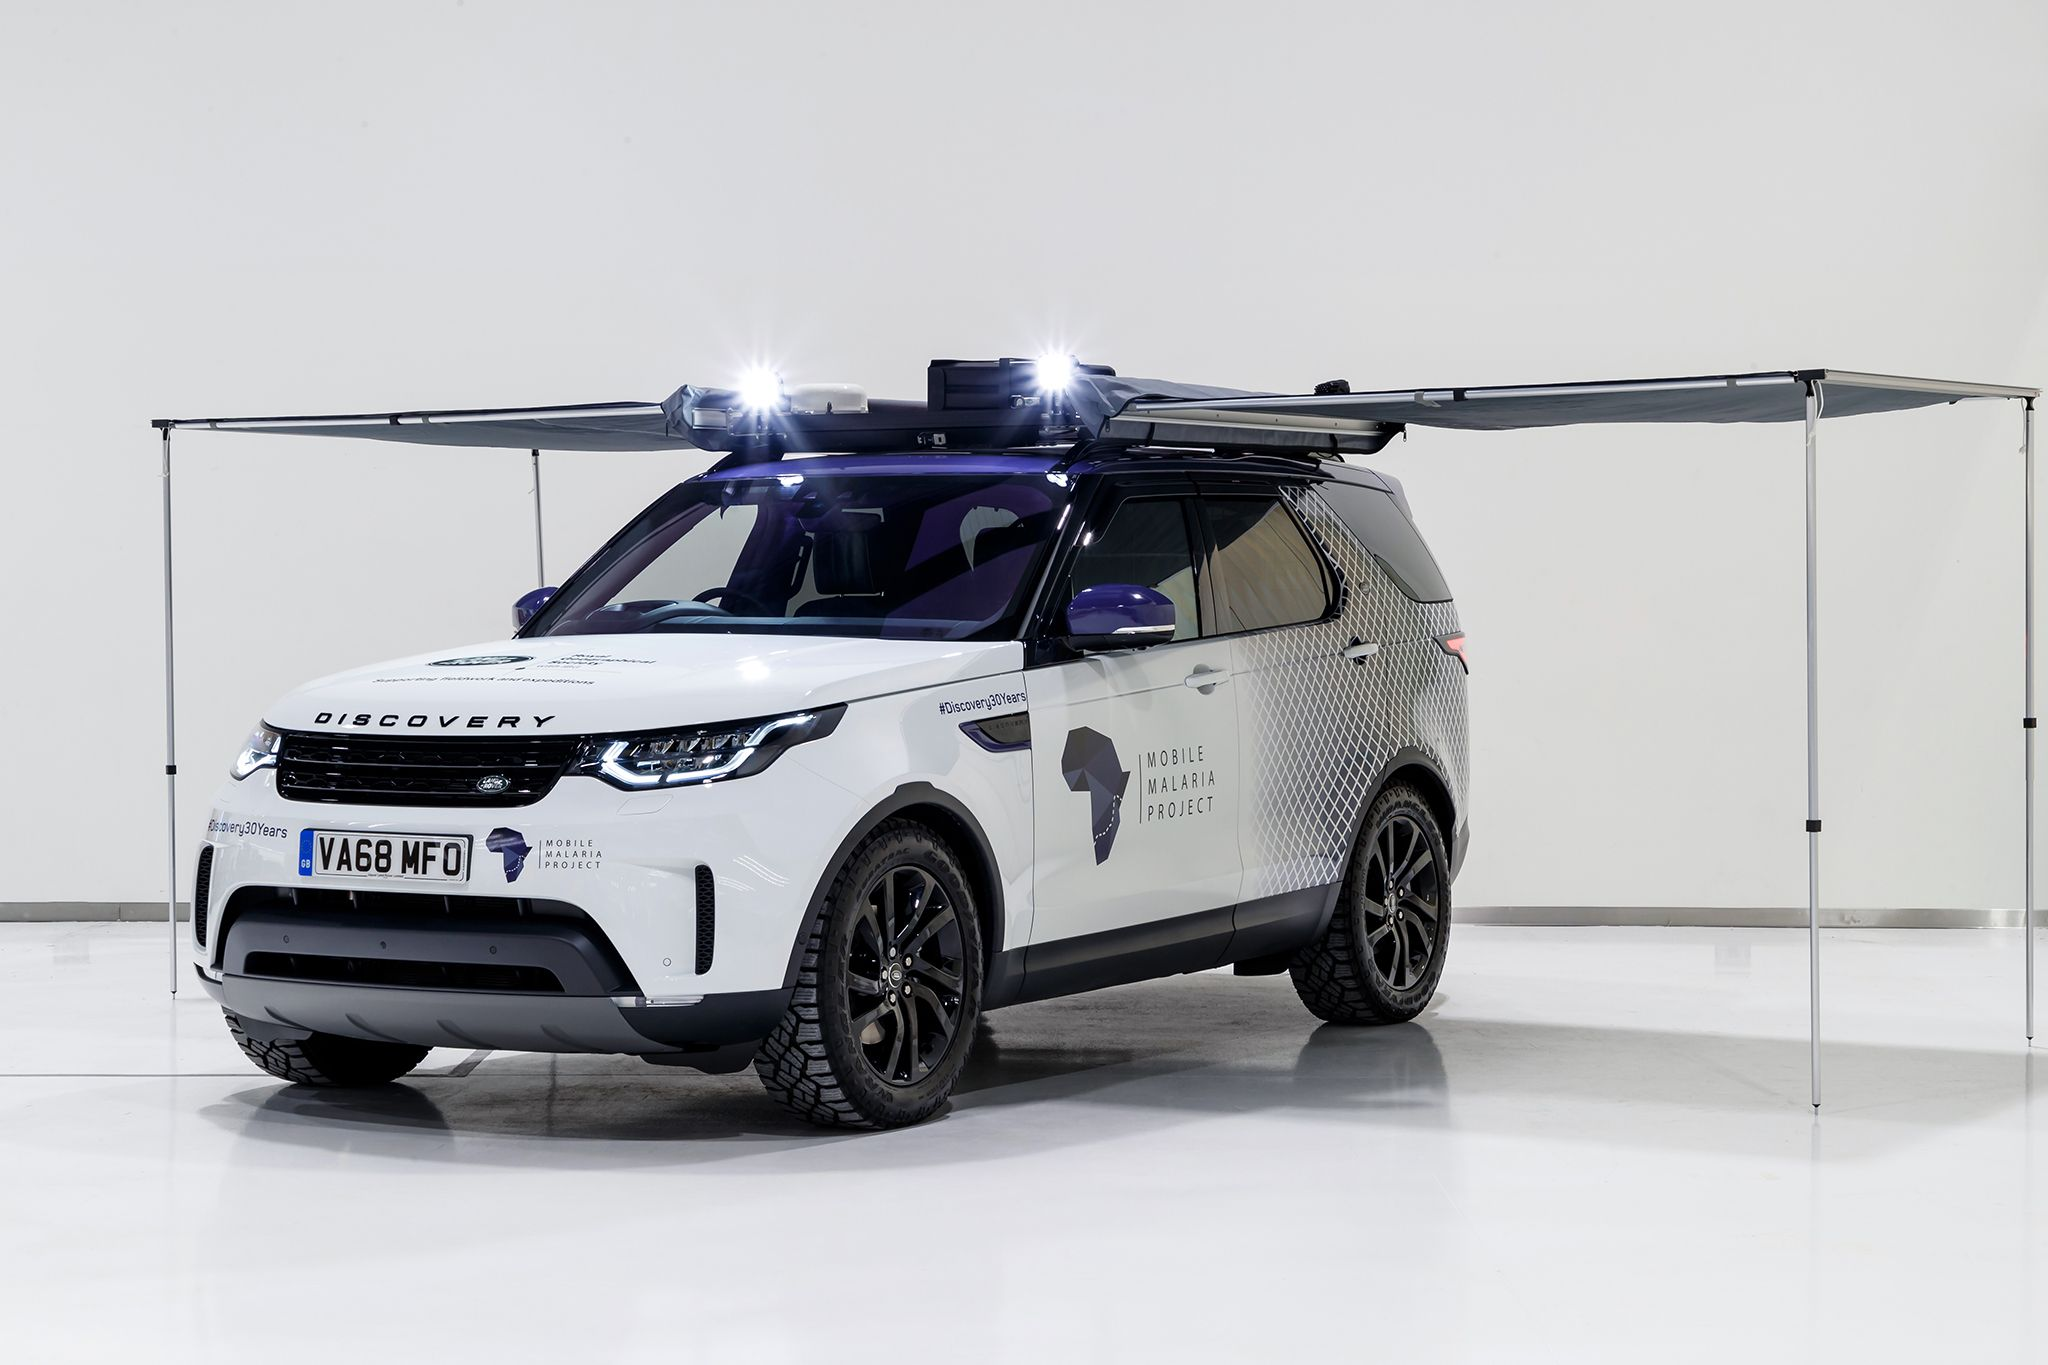 Land Rover Special Vehicle Operations has produced a special build of the Discovery SUV for the research team over at Mobile Malaria Project